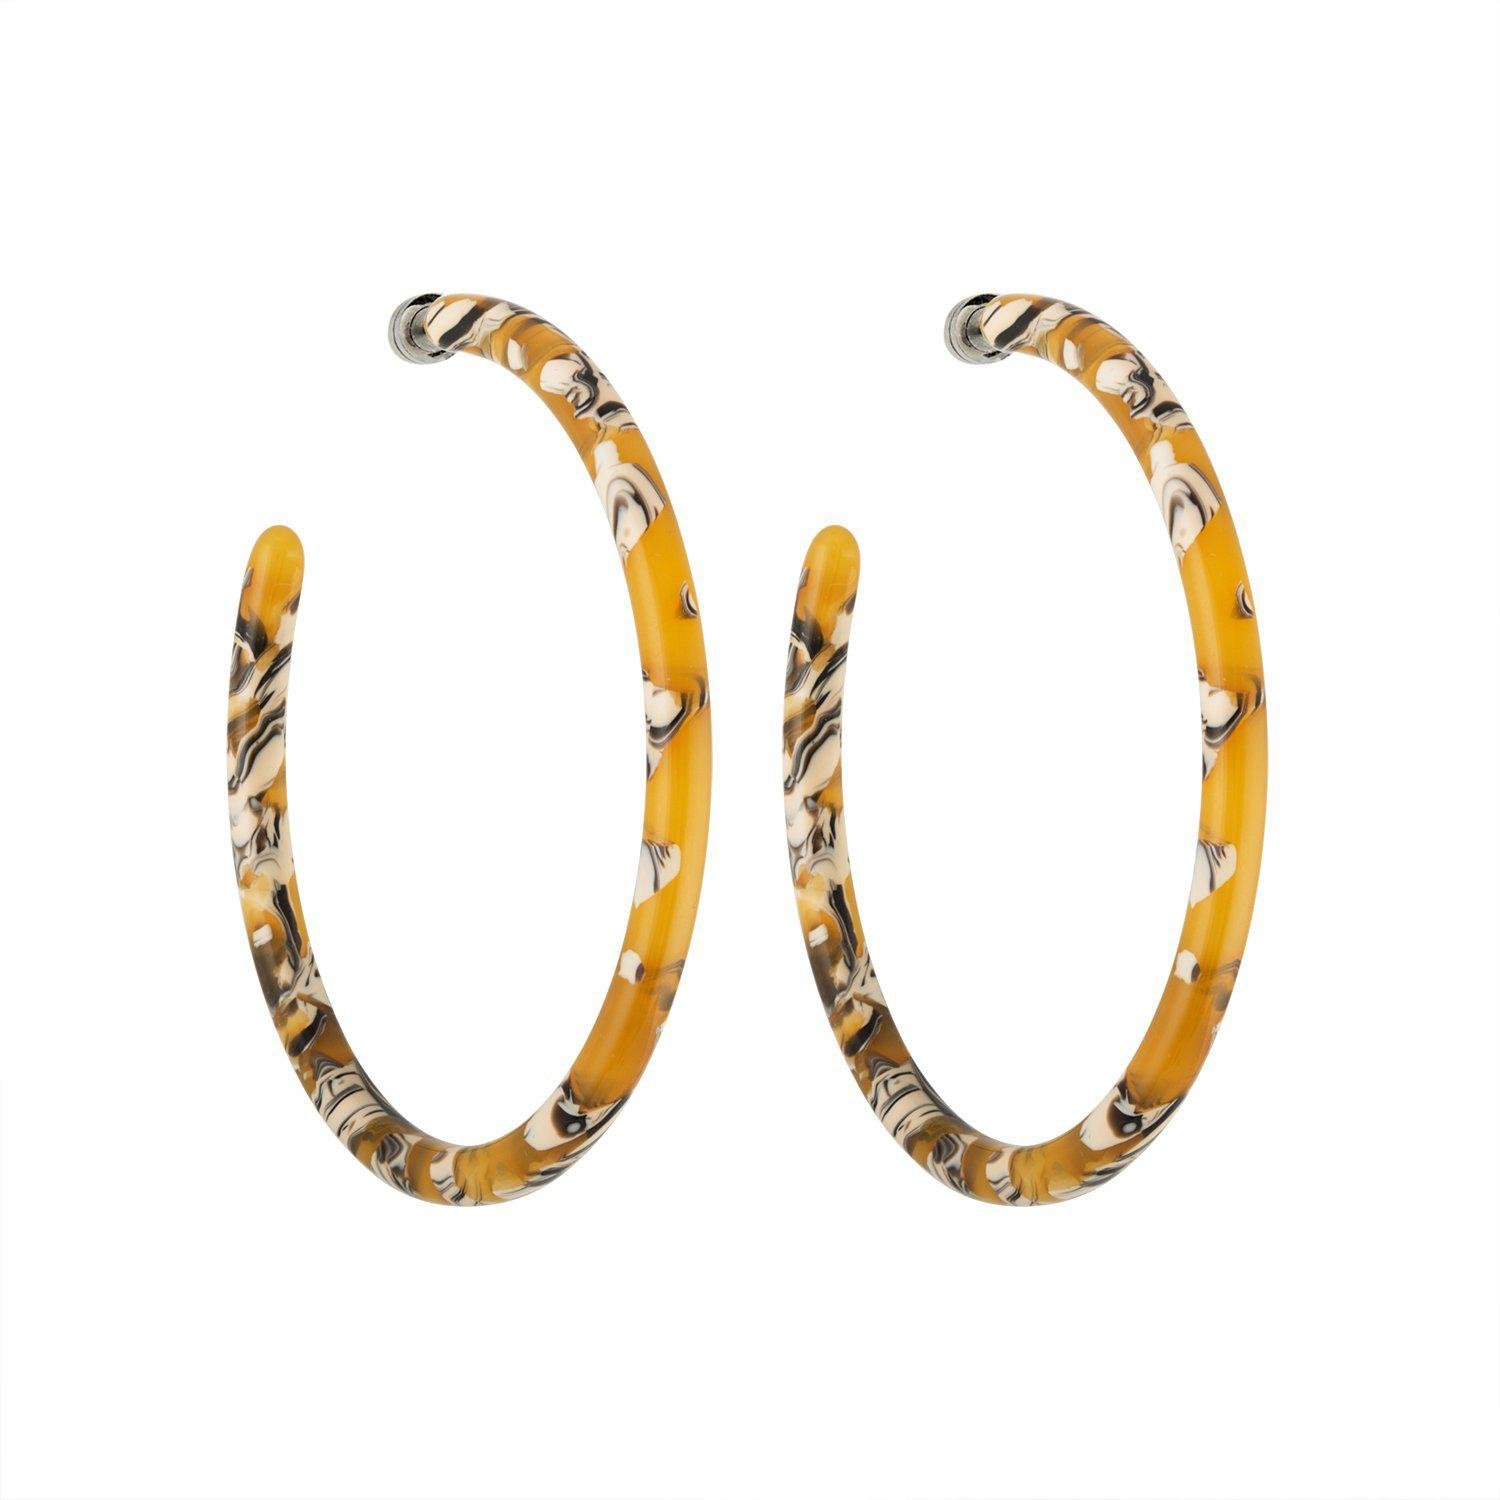 Large Hoops in Calico